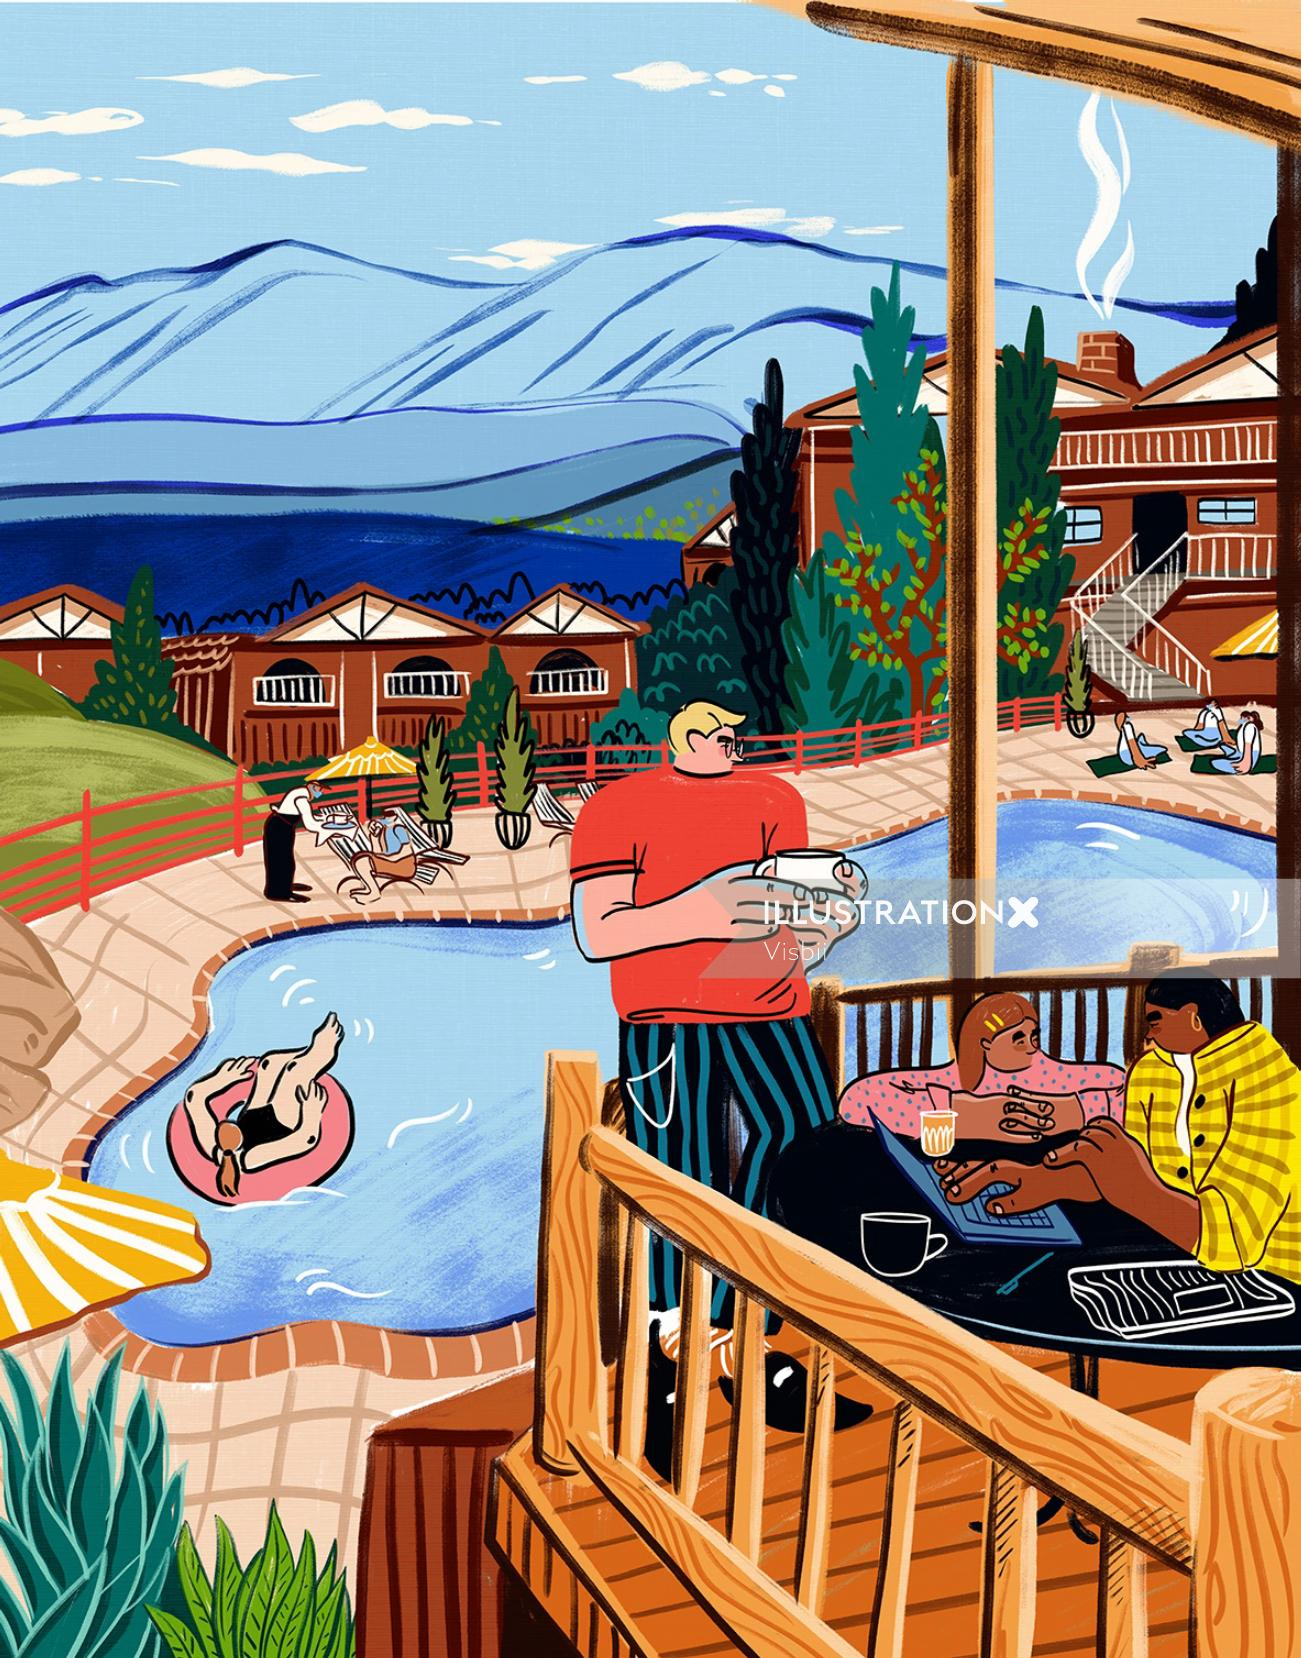 cabin, forest, family, travel trends, pool, vacation, funny, bold, bright, humorous, character, weir